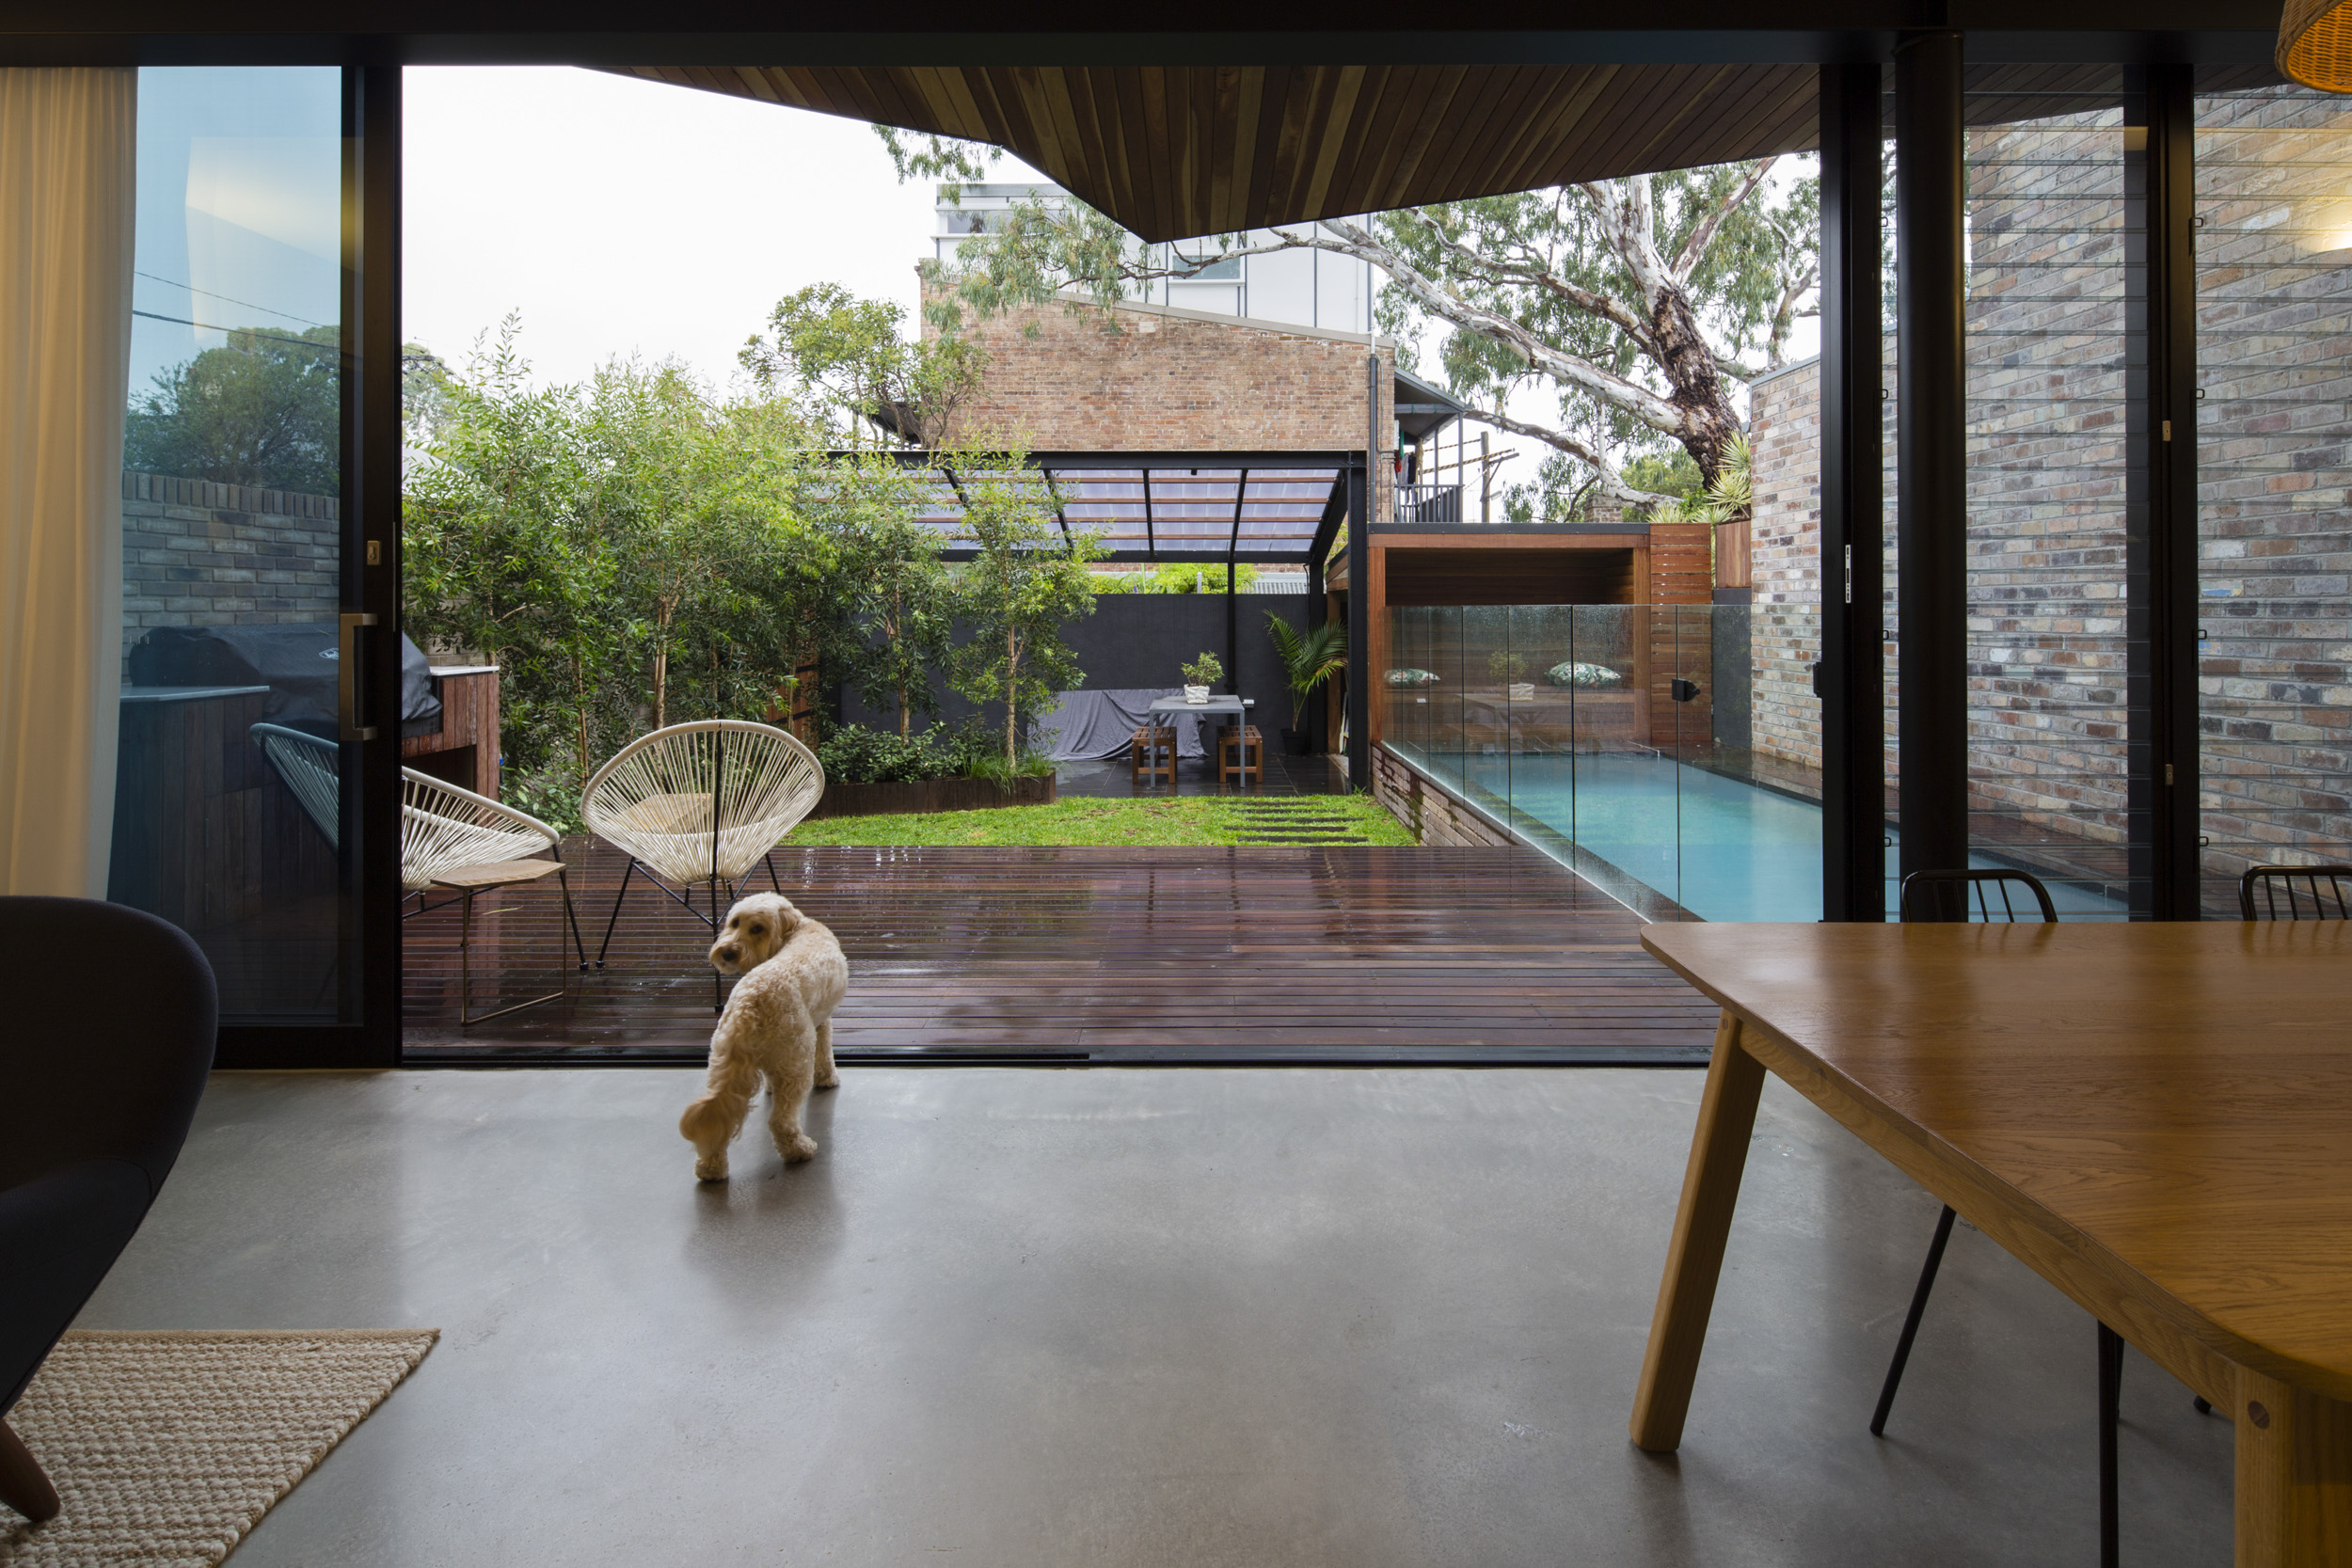 residential_architects_sq_projects_sydney_08.jpg